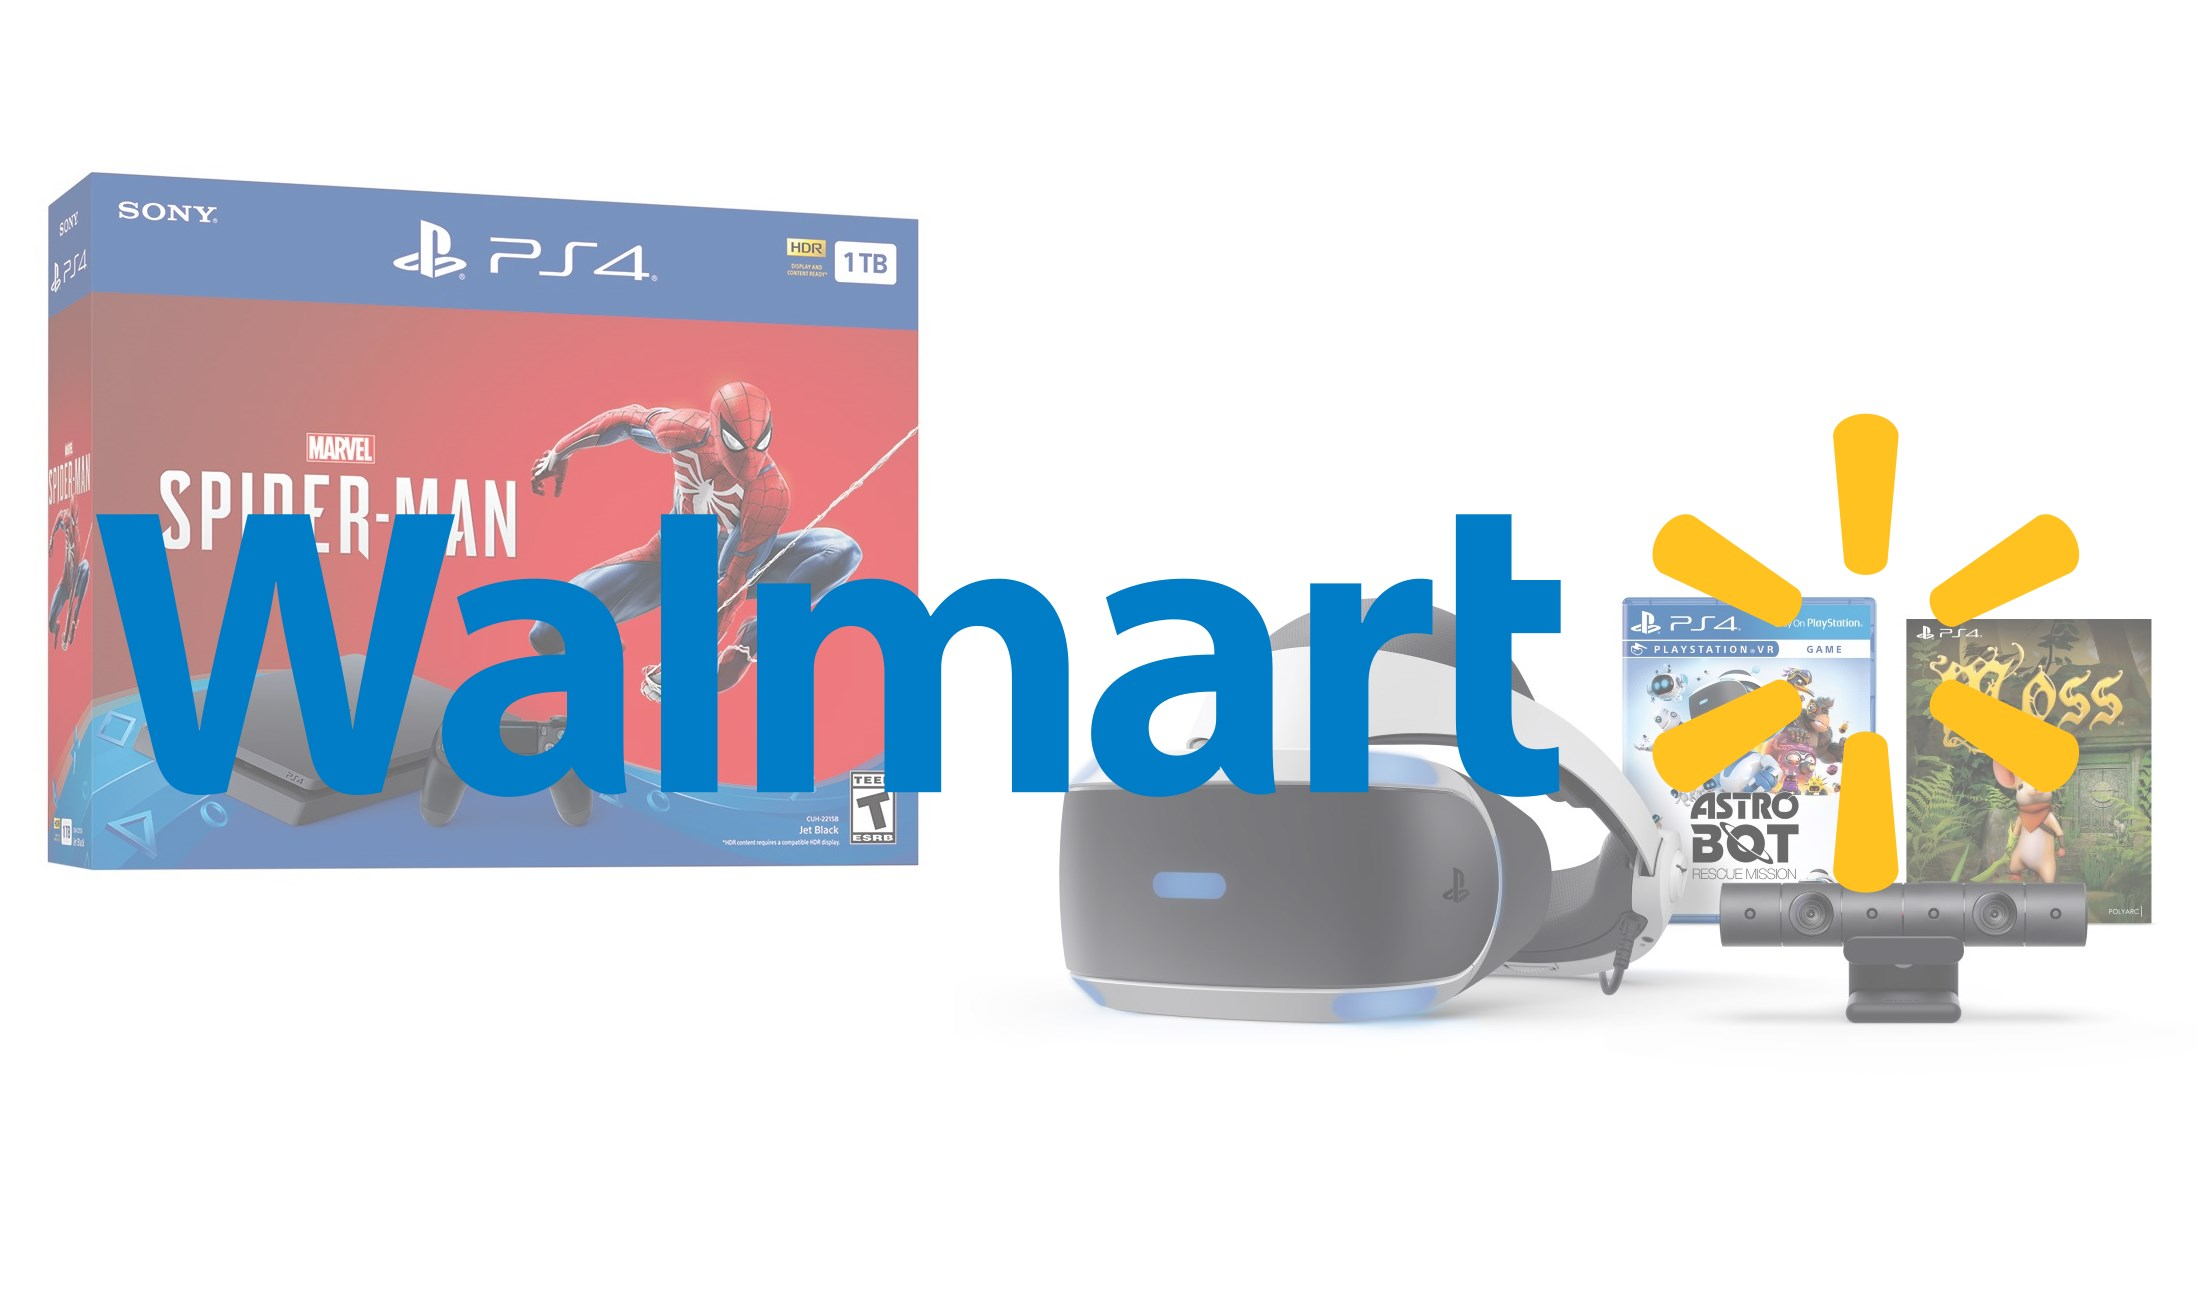 Walmart's Black Friday deals include a Spider-Man PS4 bundle and